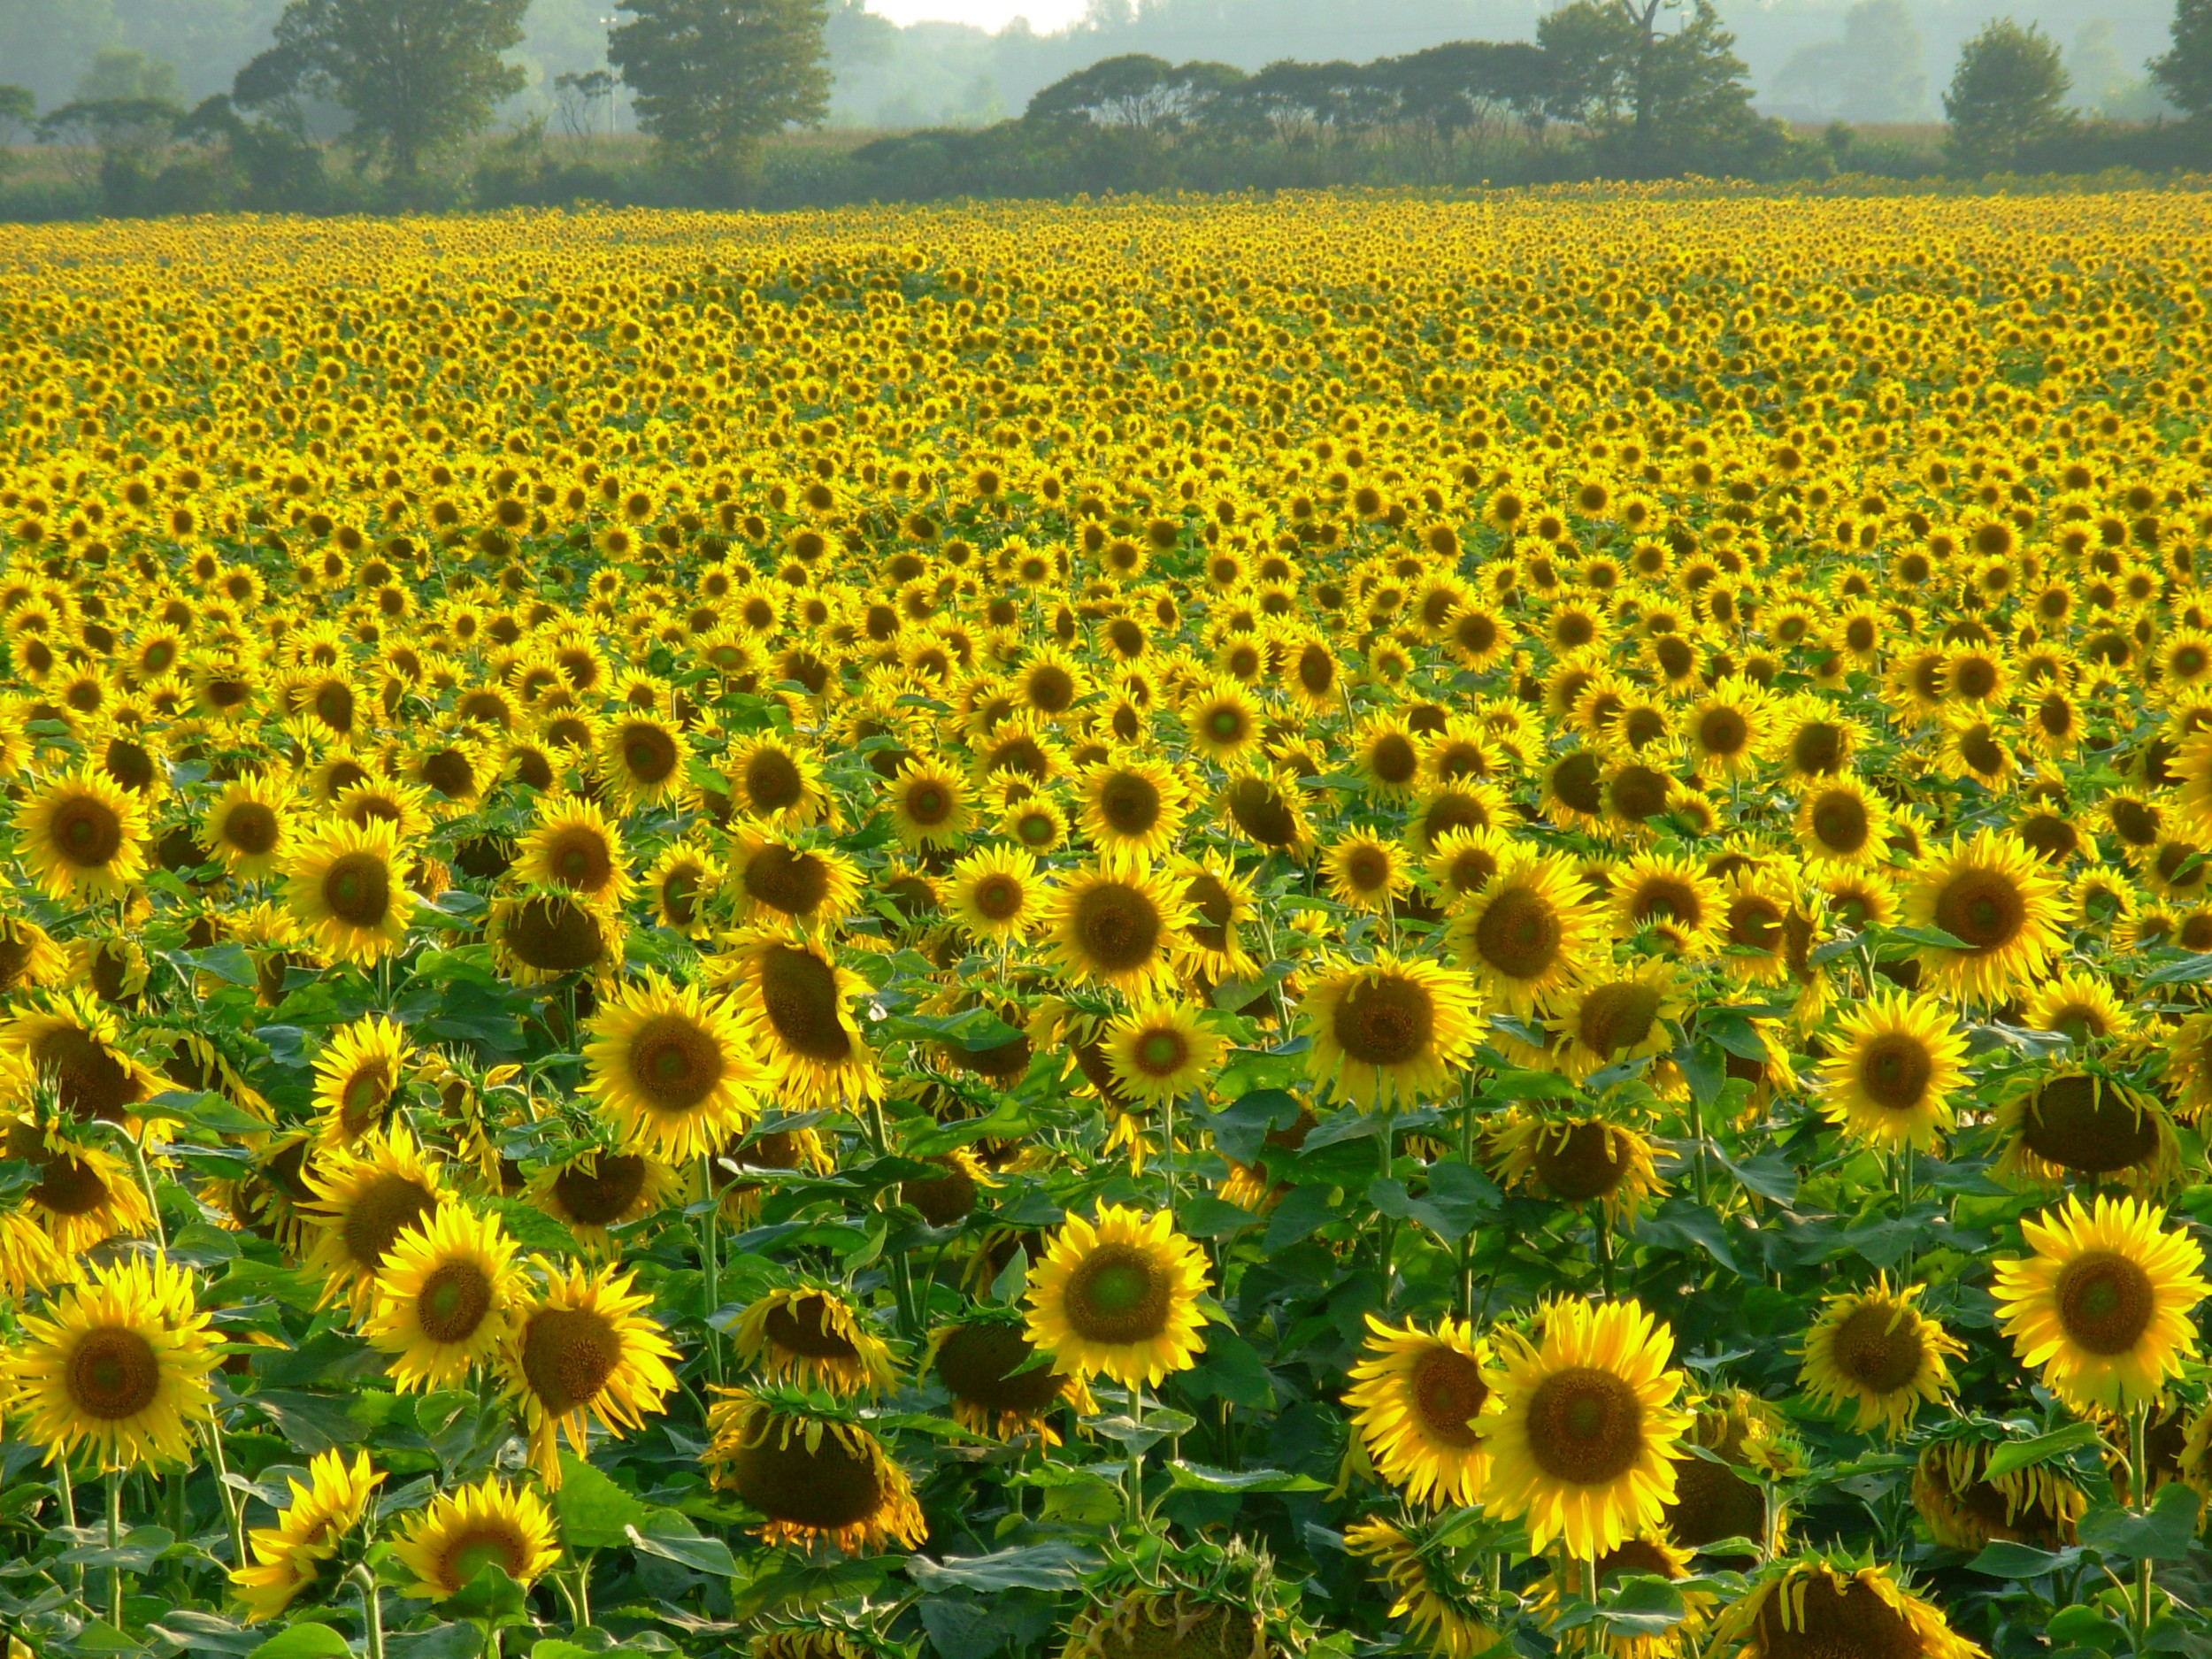 sunflowers.jpeg.JPG